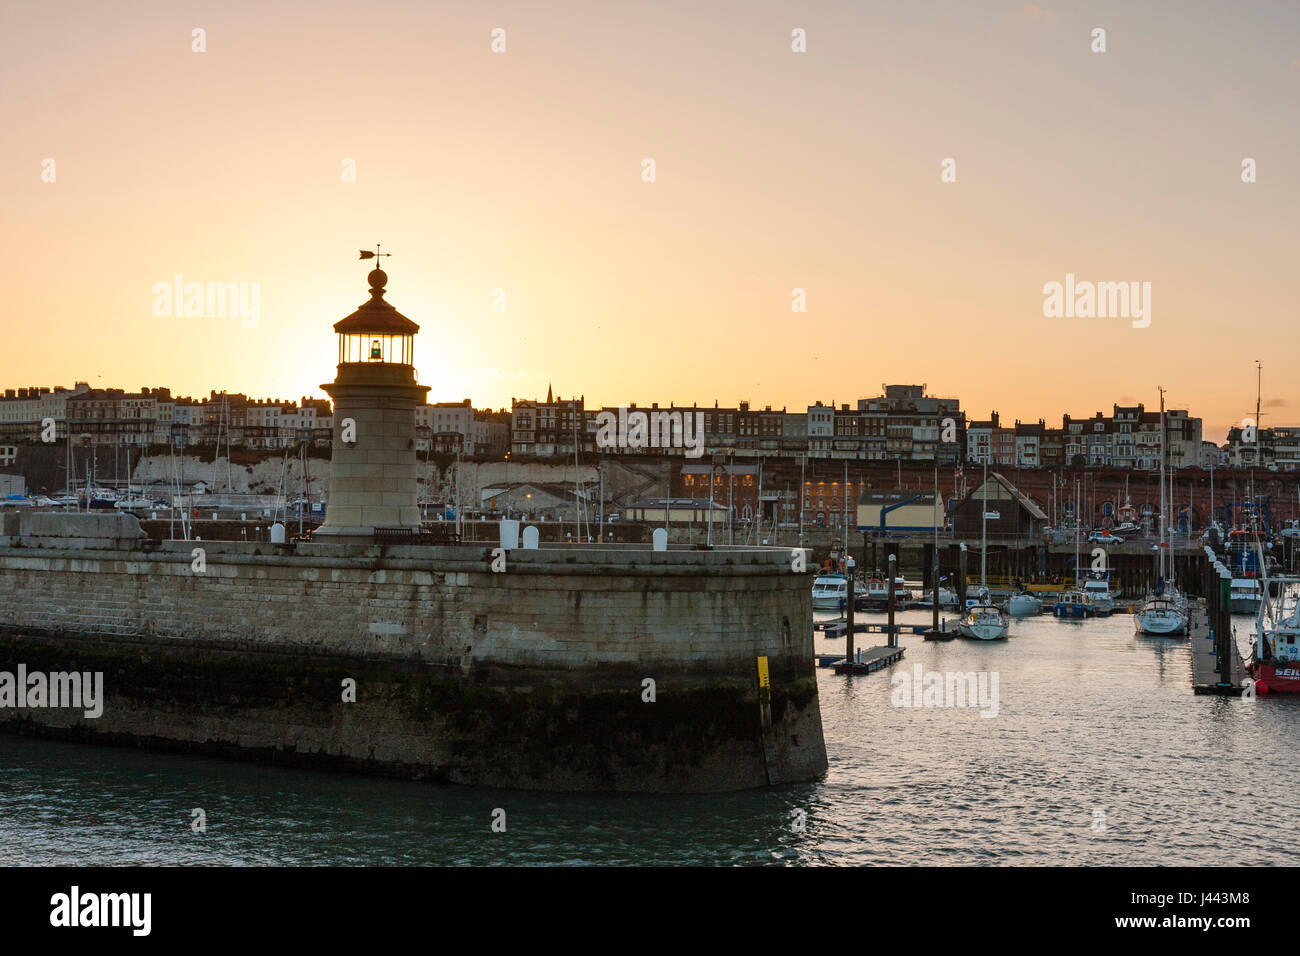 Ramsgate Royal Harbour. Lighthouse at end of jetty with boats moored in the harbour and behind that Ramsgate seafront Stock Photo